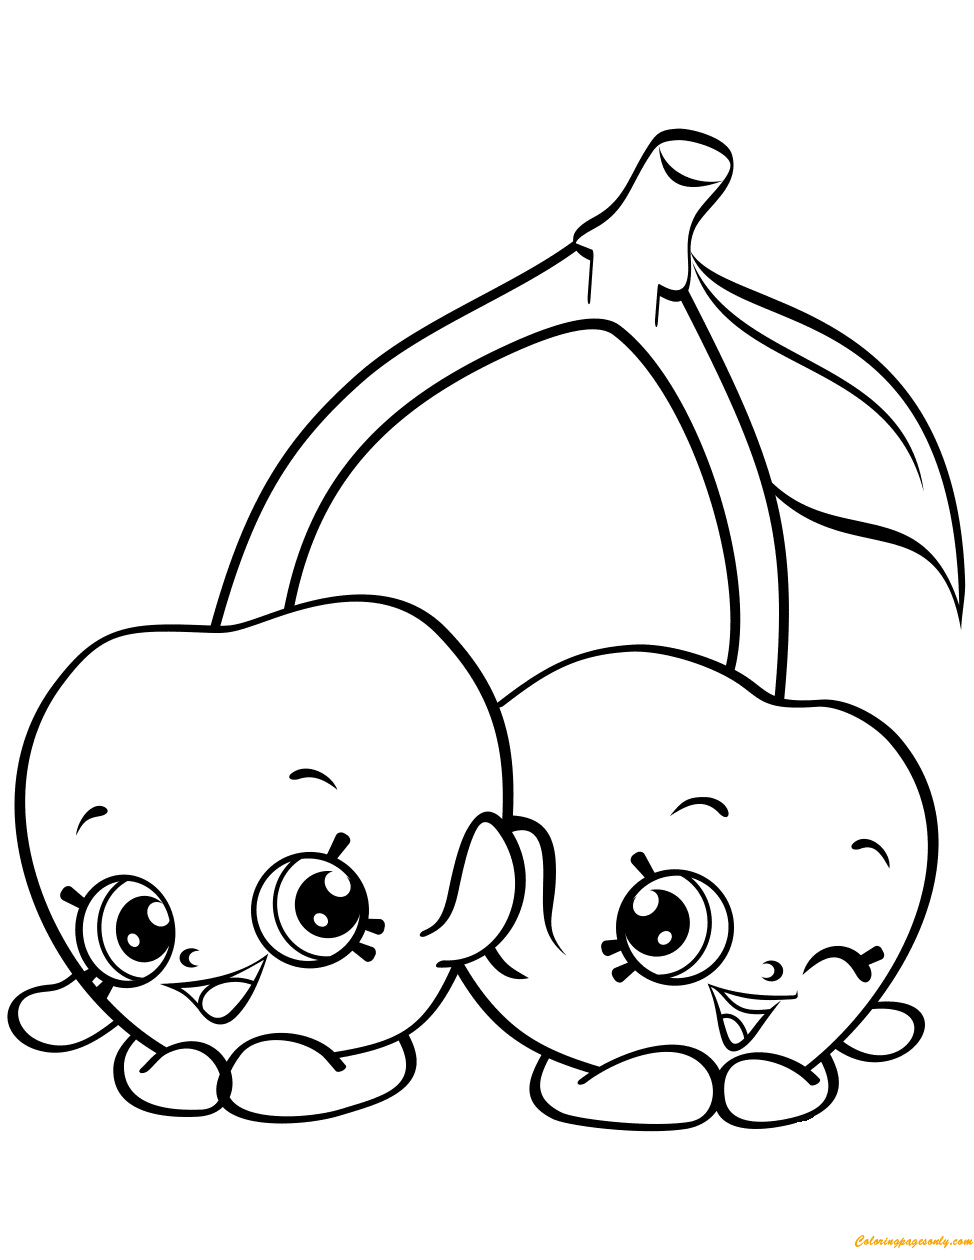 Cheeky Cherries Shopkin Season 4 Coloring Page Free